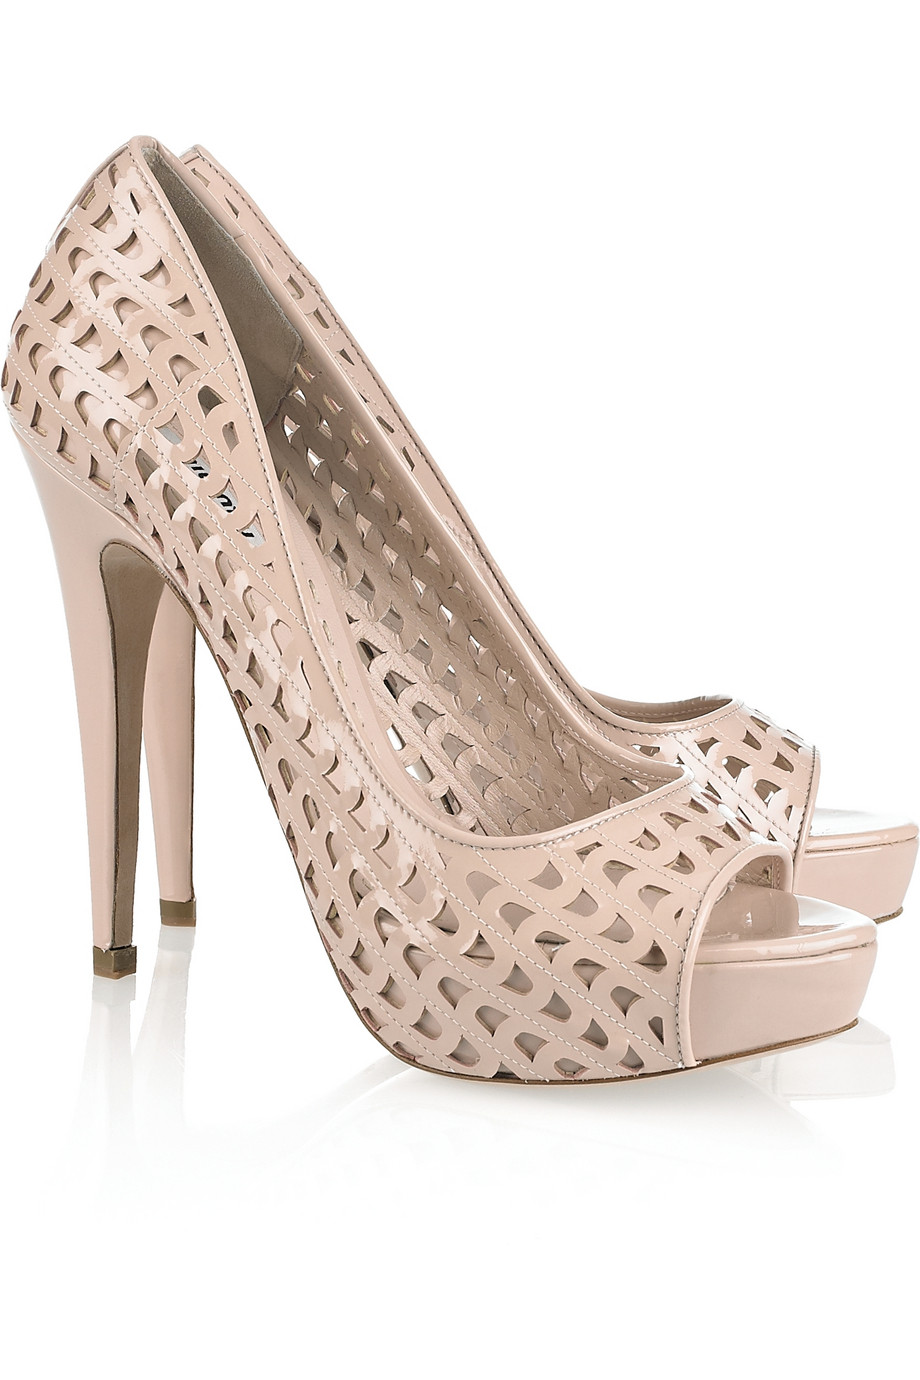 Miu Miu Perforated Peep-Toe Pumps sale cheap geniue stockist for sale cheap clearance choice online 2014 new for sale KyF4coZSYO